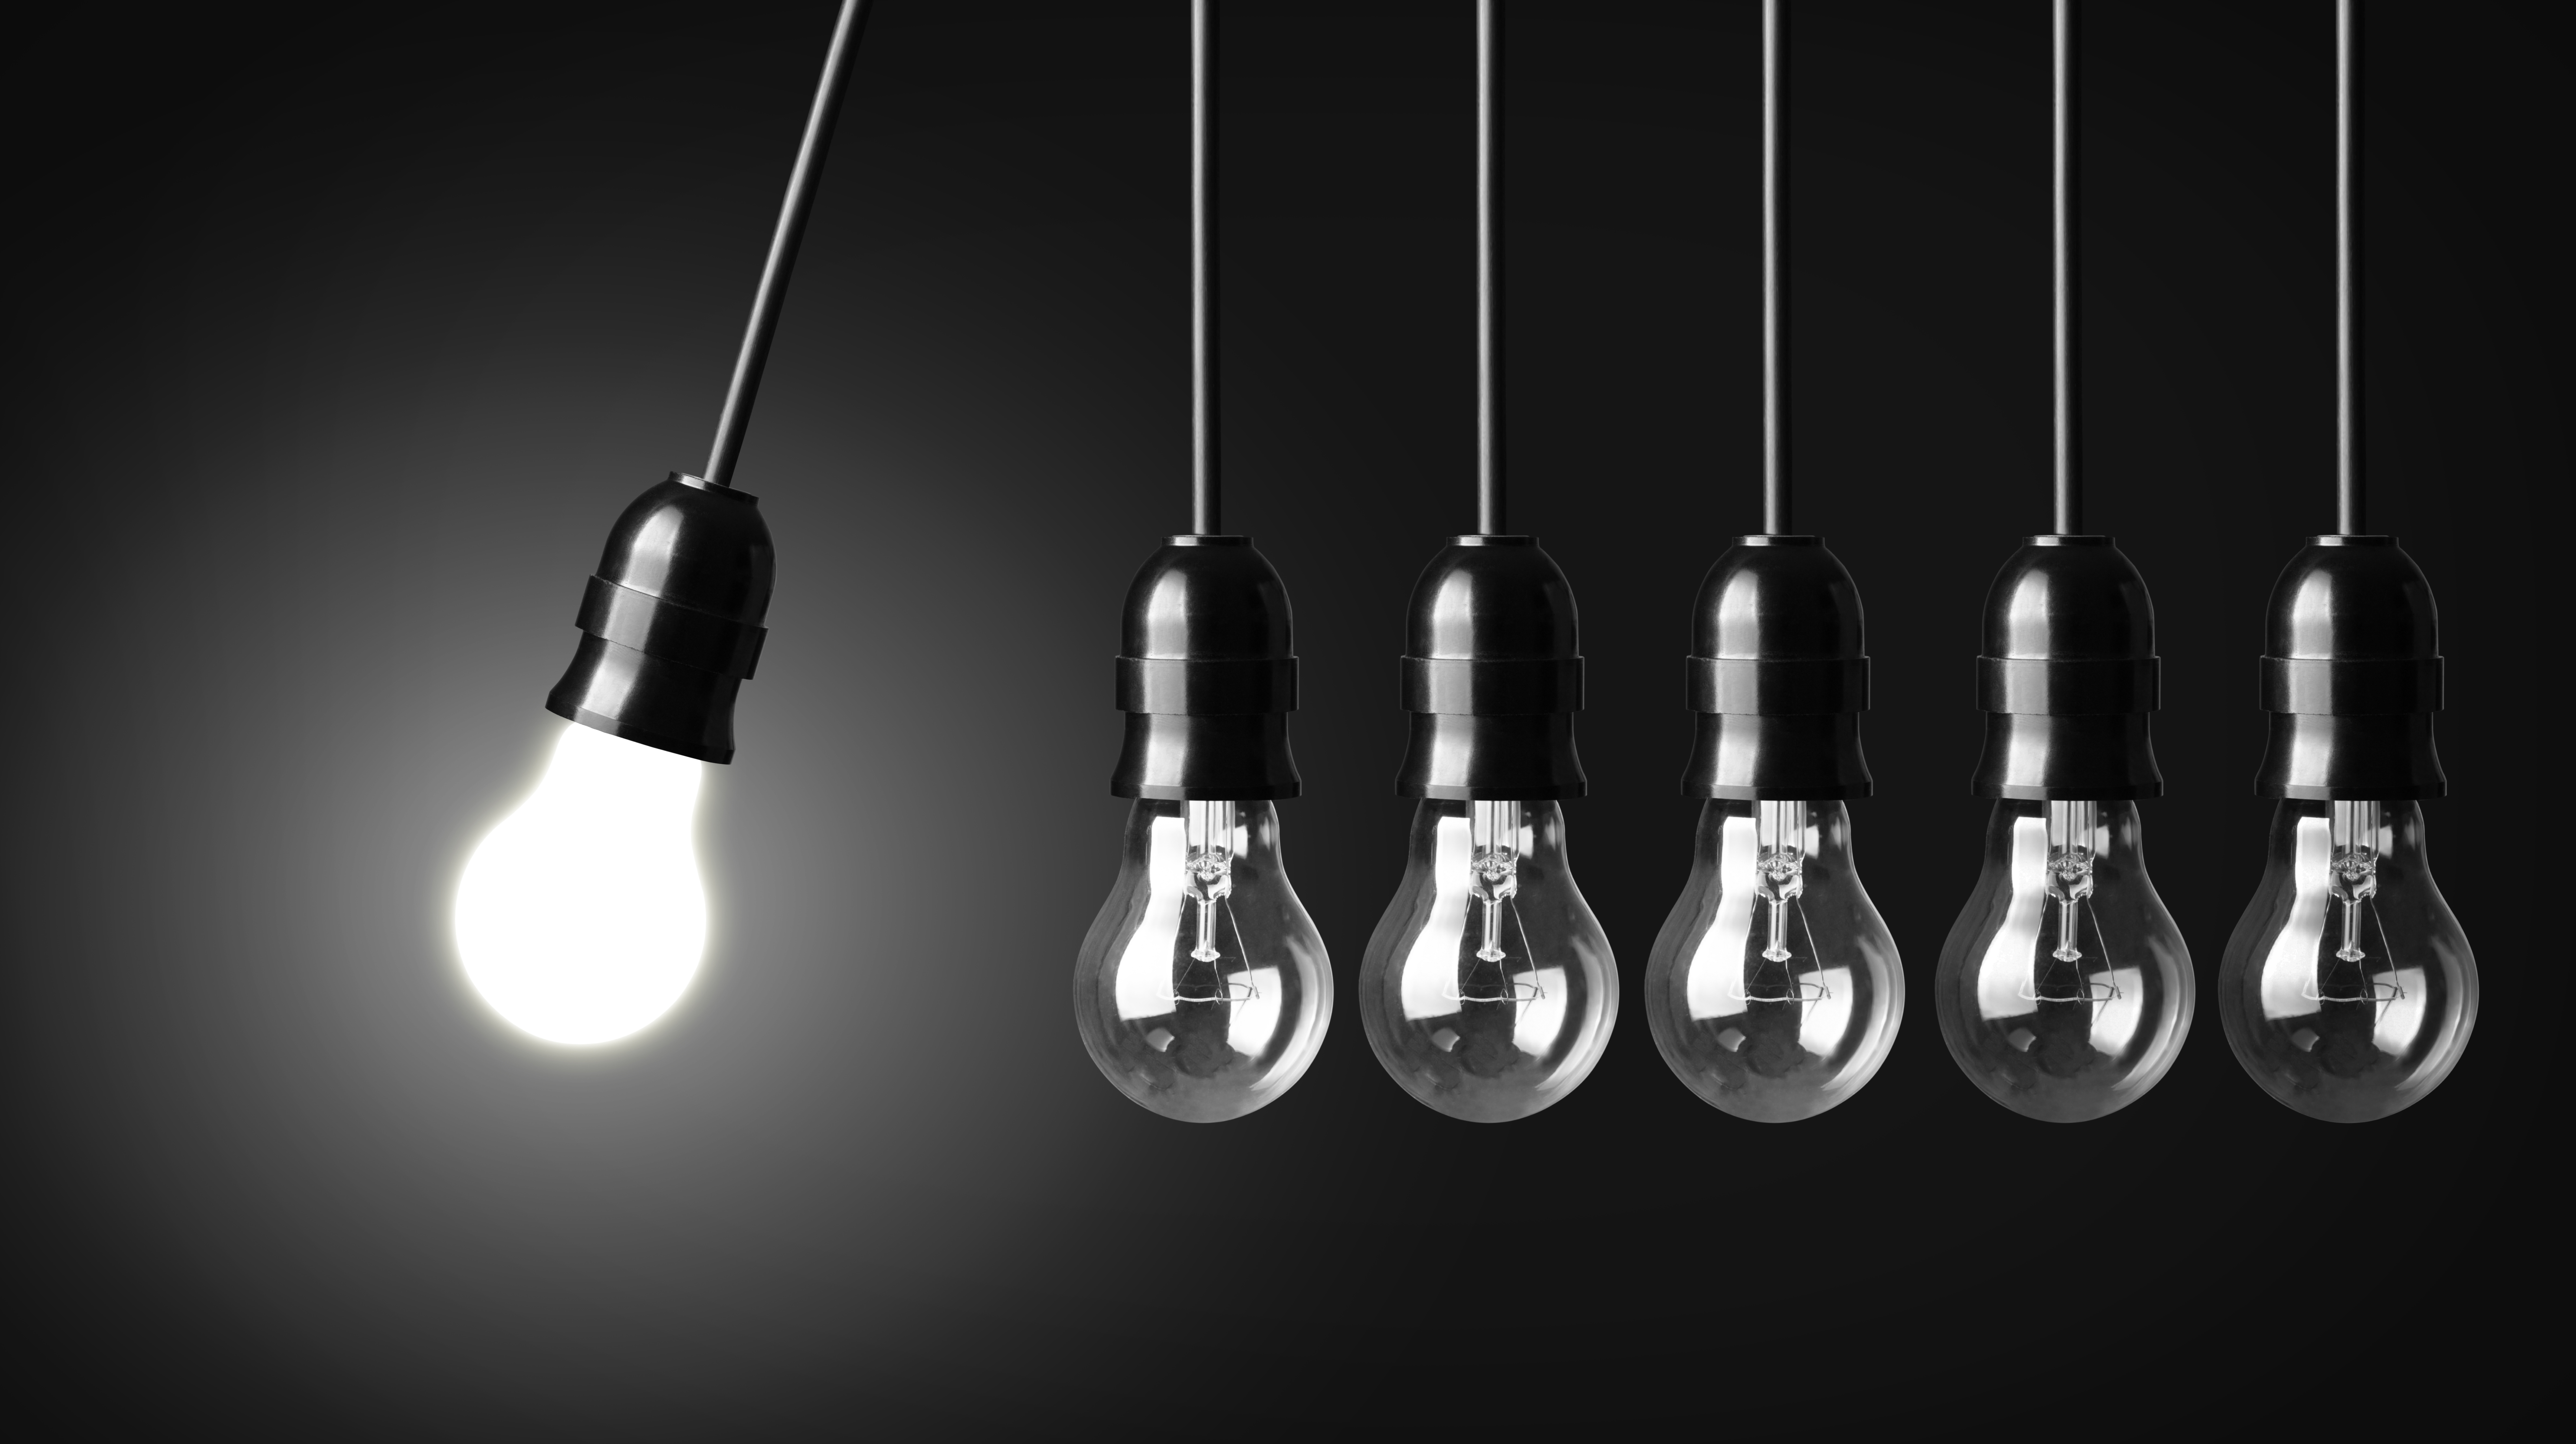 Idea concept on black. Perpetual motion with light bulbs